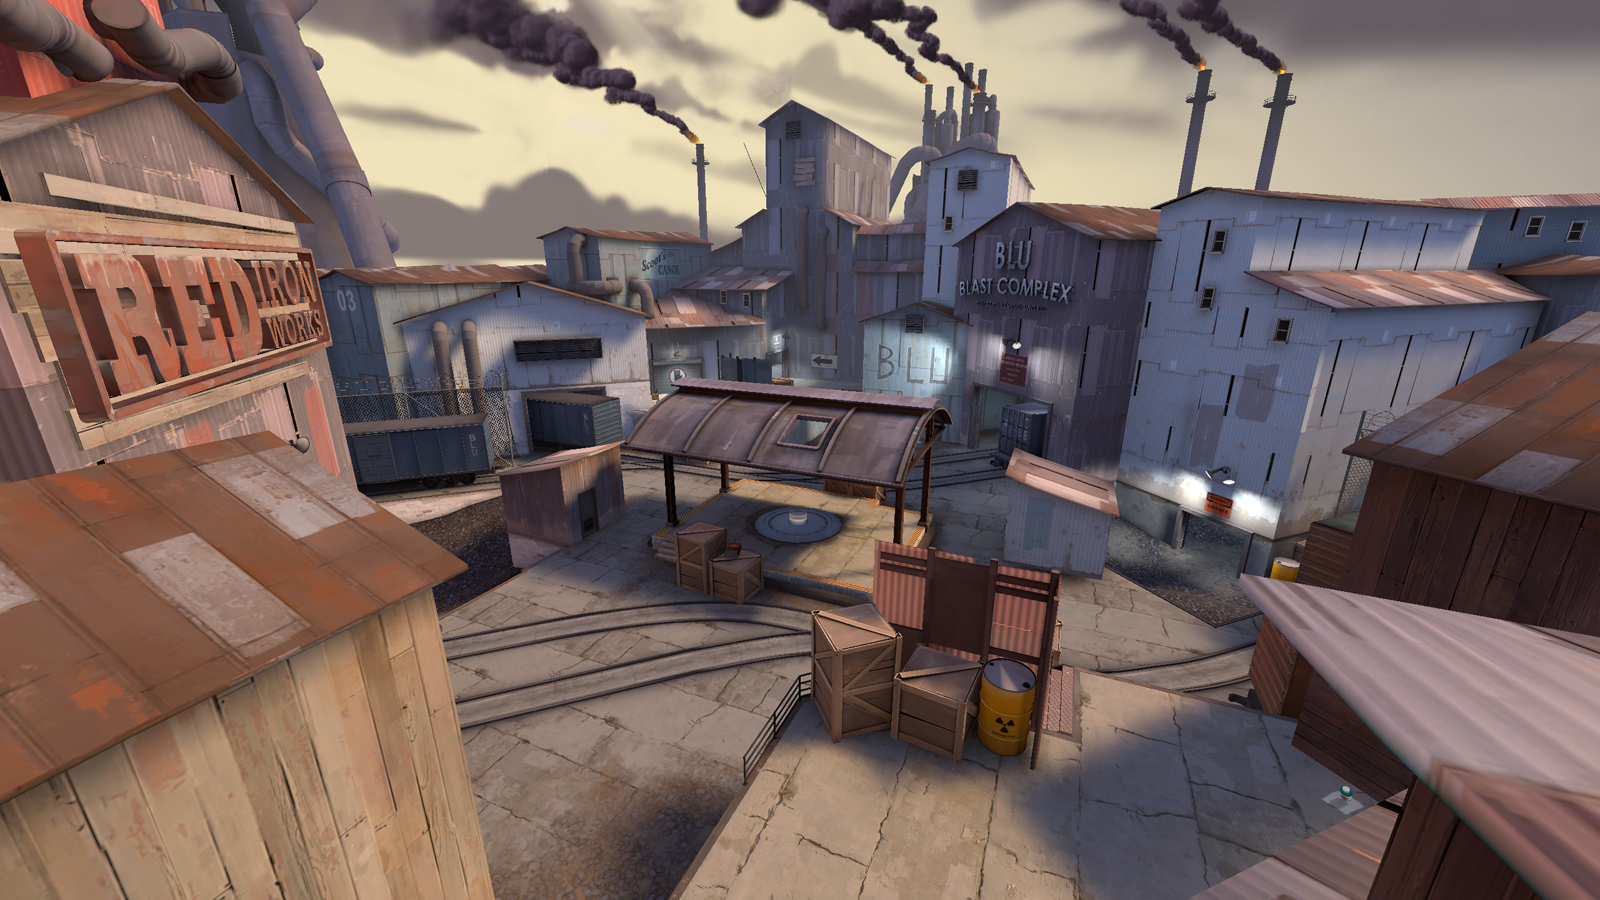 Script for ganking TF2 map images from Wikipedia · GitHub